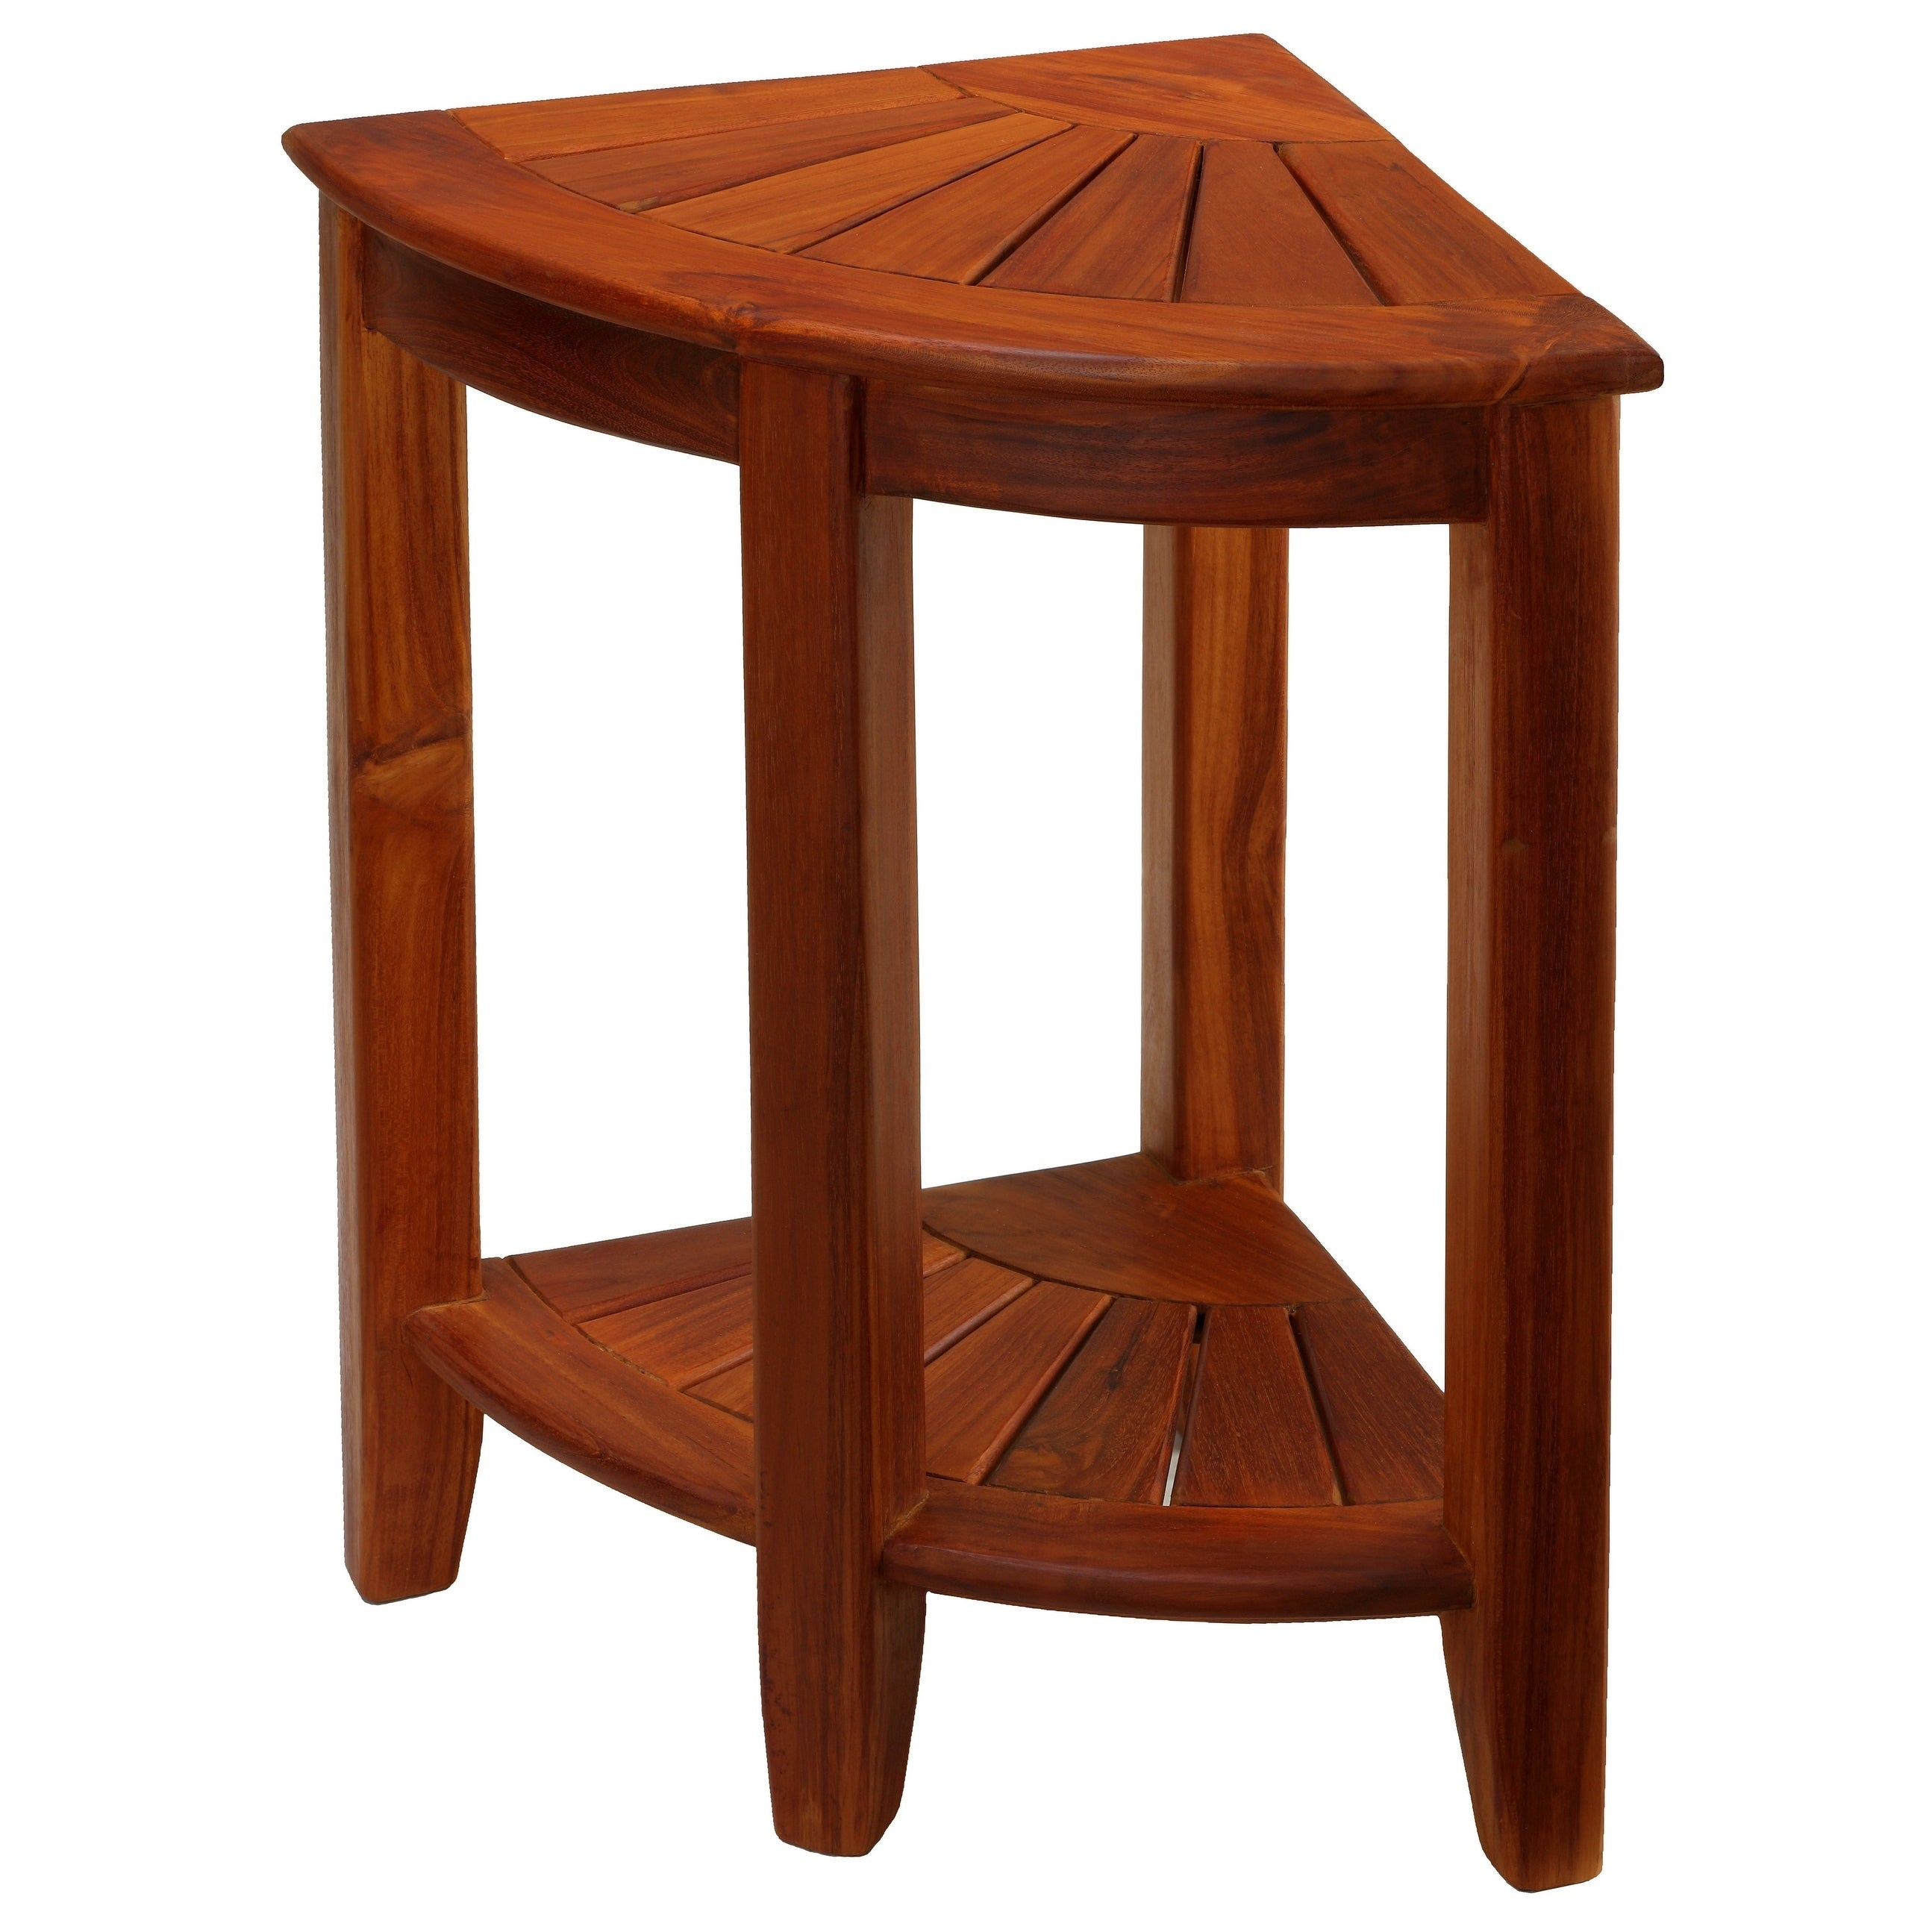 Bare Decor Elana Tall Corner Spa Shower Stool In Solid Teak Wood 24 H